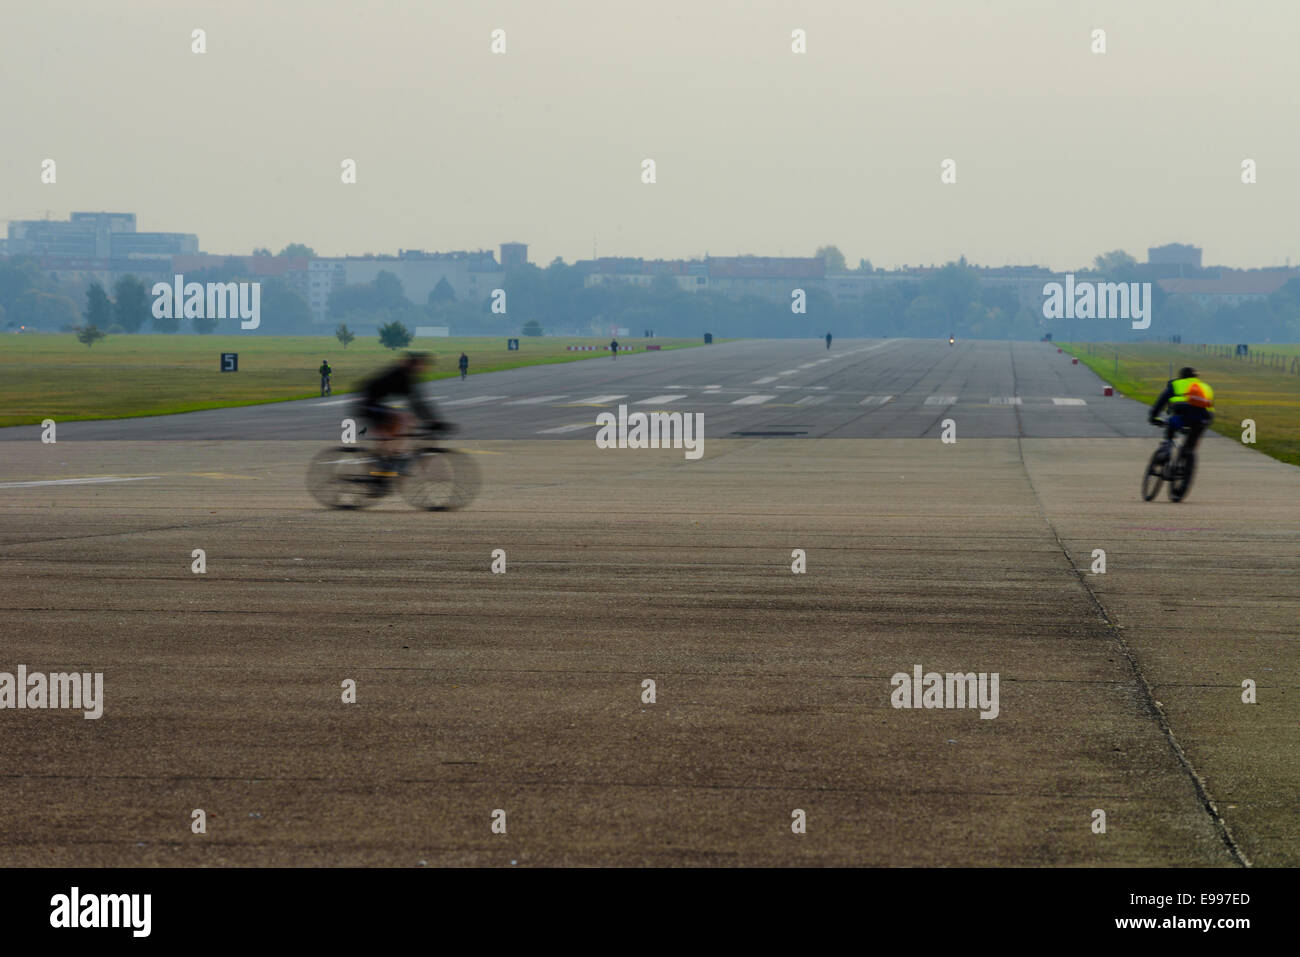 BERLIN - OCTOBER 07 2014. Vacation zone with resting people of Tempelhof airport on October 07, 2014, Berlin, Germany. - Stock Image